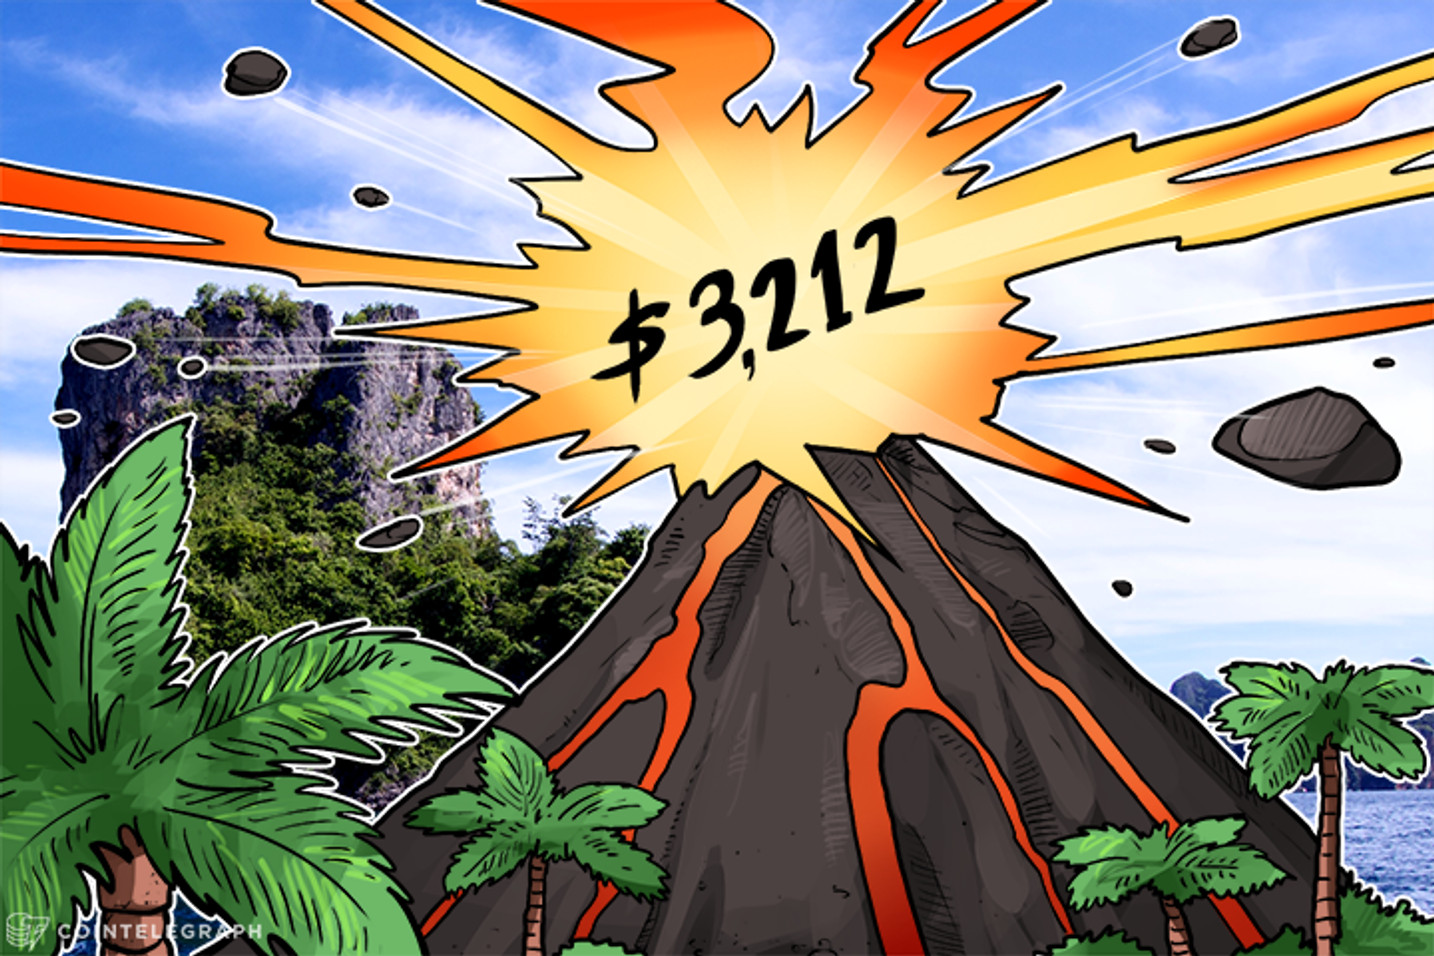 Bitcoin Price Explodes to $3,212 New All-Time High, Factors